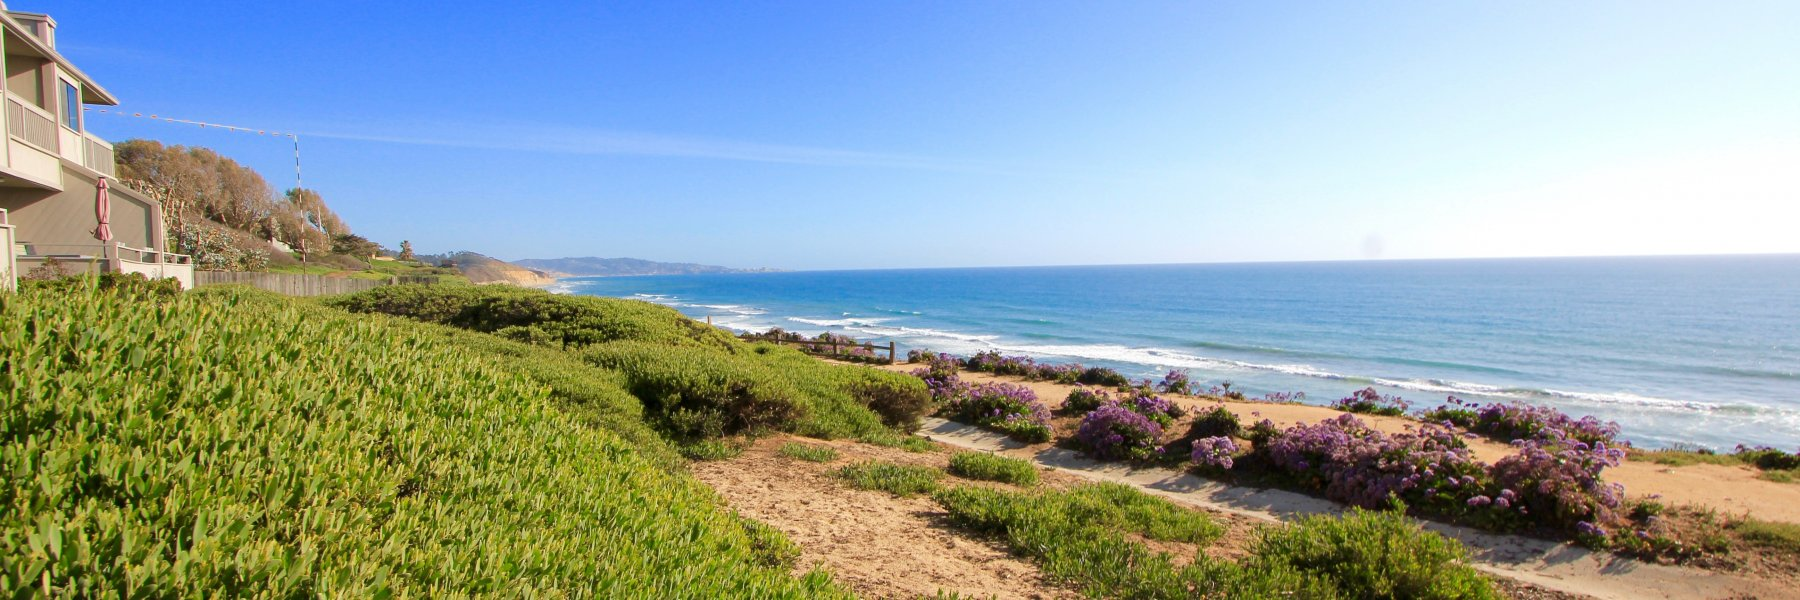 Del Mar Woods is a community of homes in Del Mar California